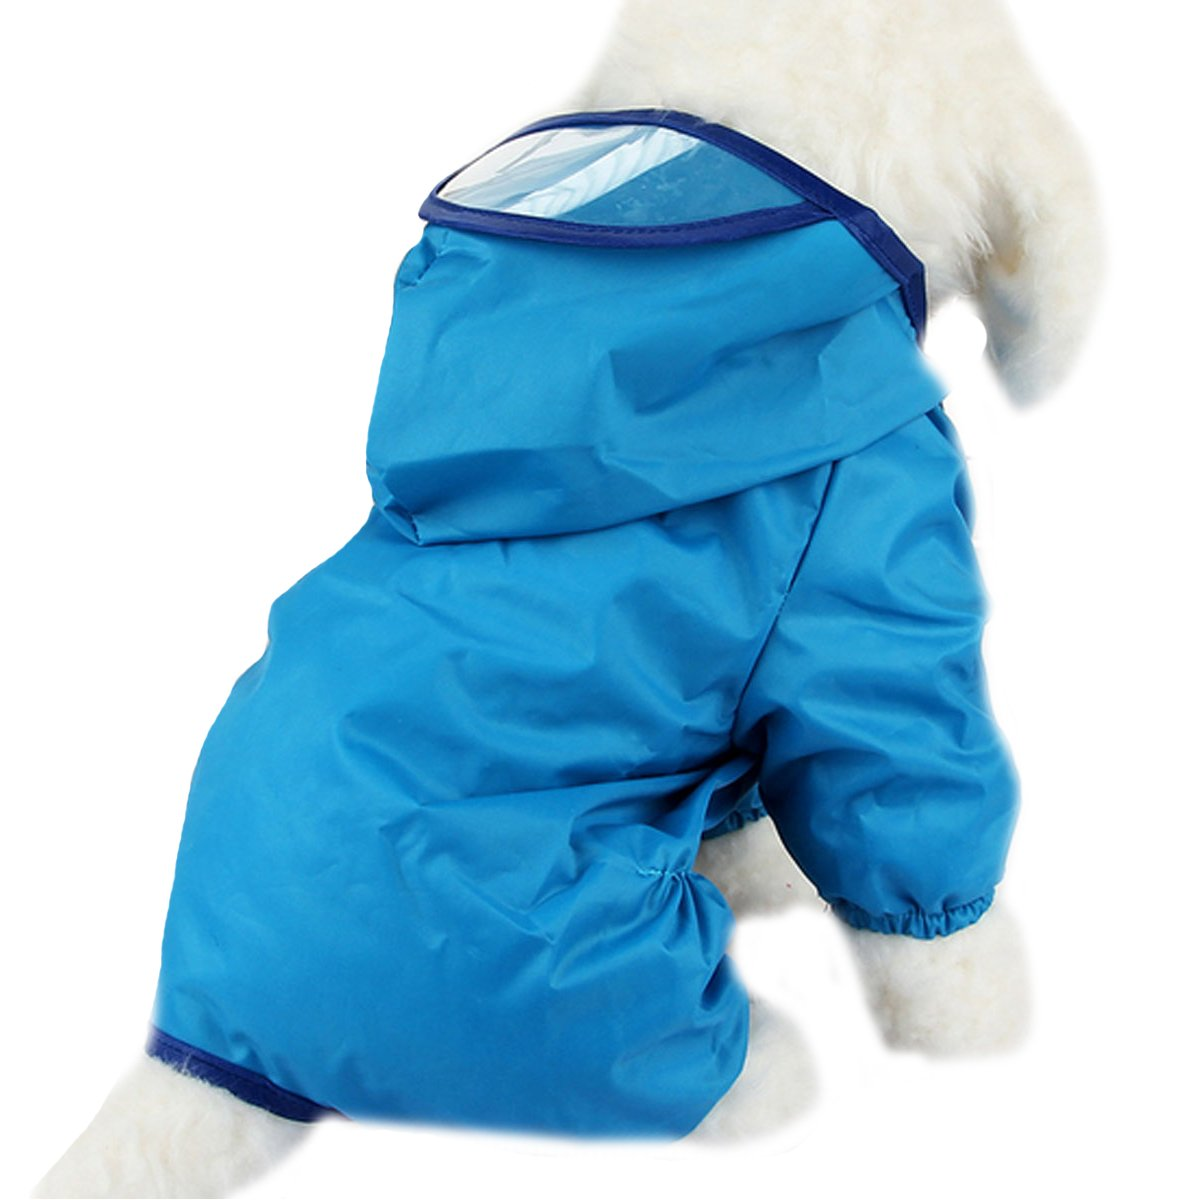 Budd Pet Dog Raincoat Puppy Waterproof Clothes Lightweight Rain Jacket Poncho Outdoor Hoodies Jumpsuit (Blue,M)